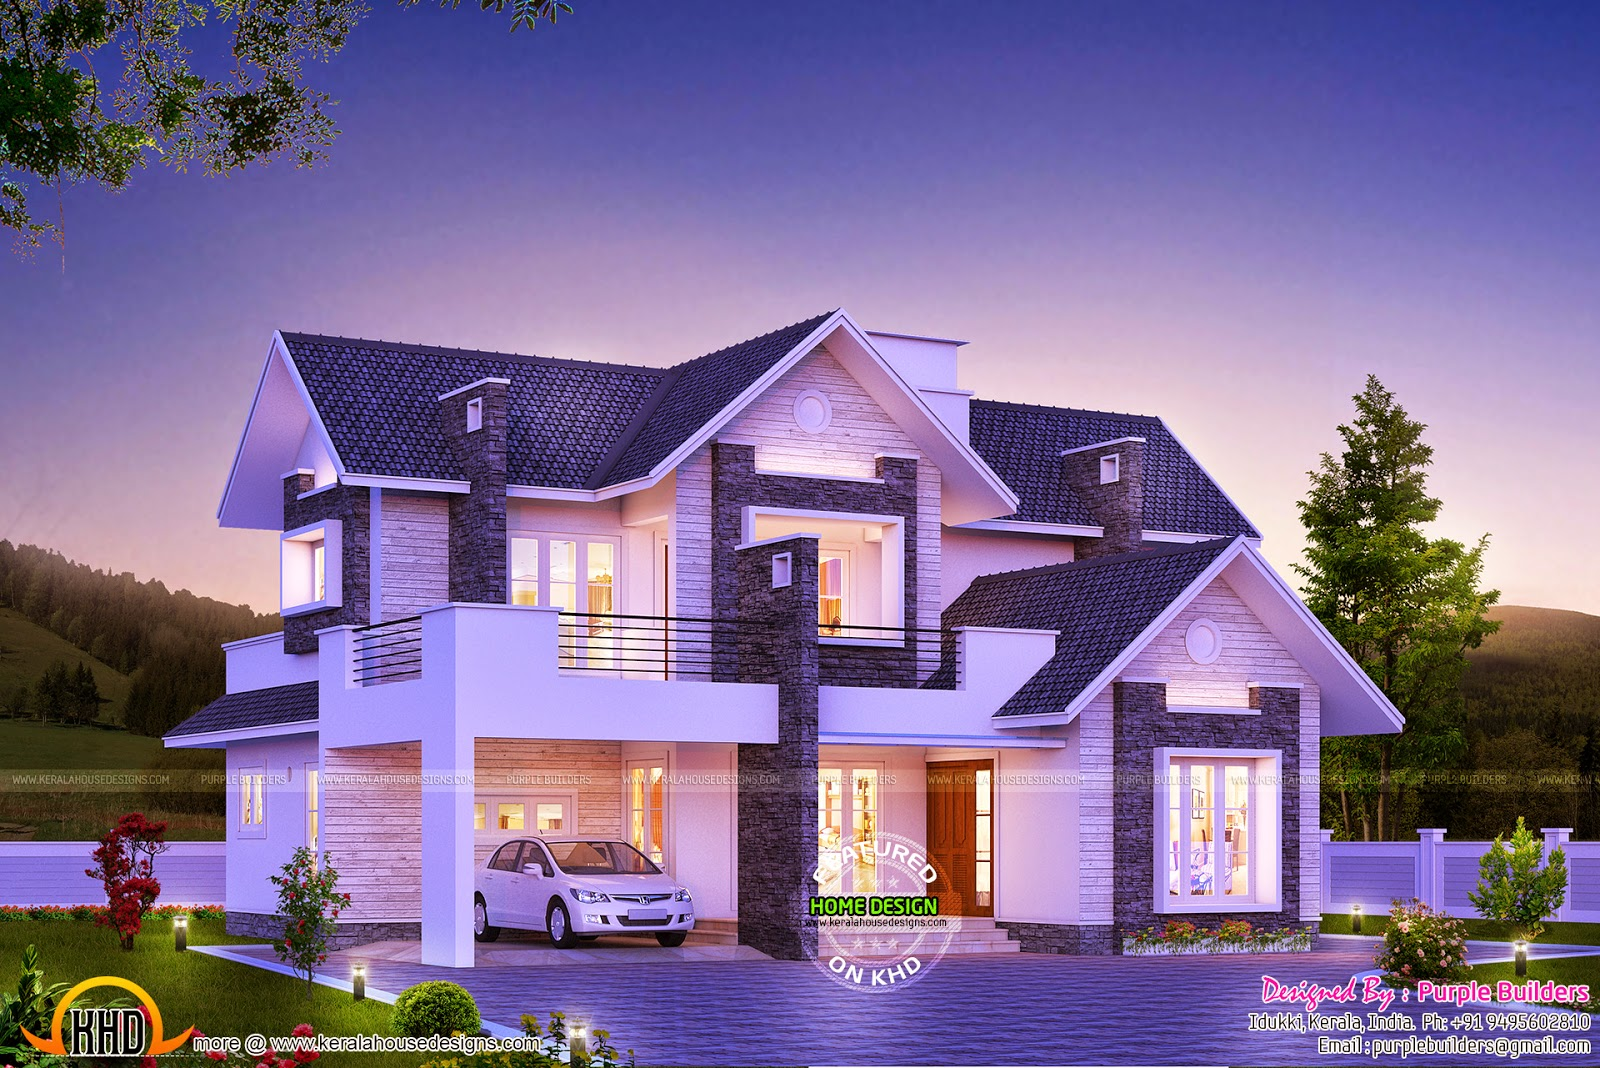 Super dream home kerala home design and floor plans - Design house ...